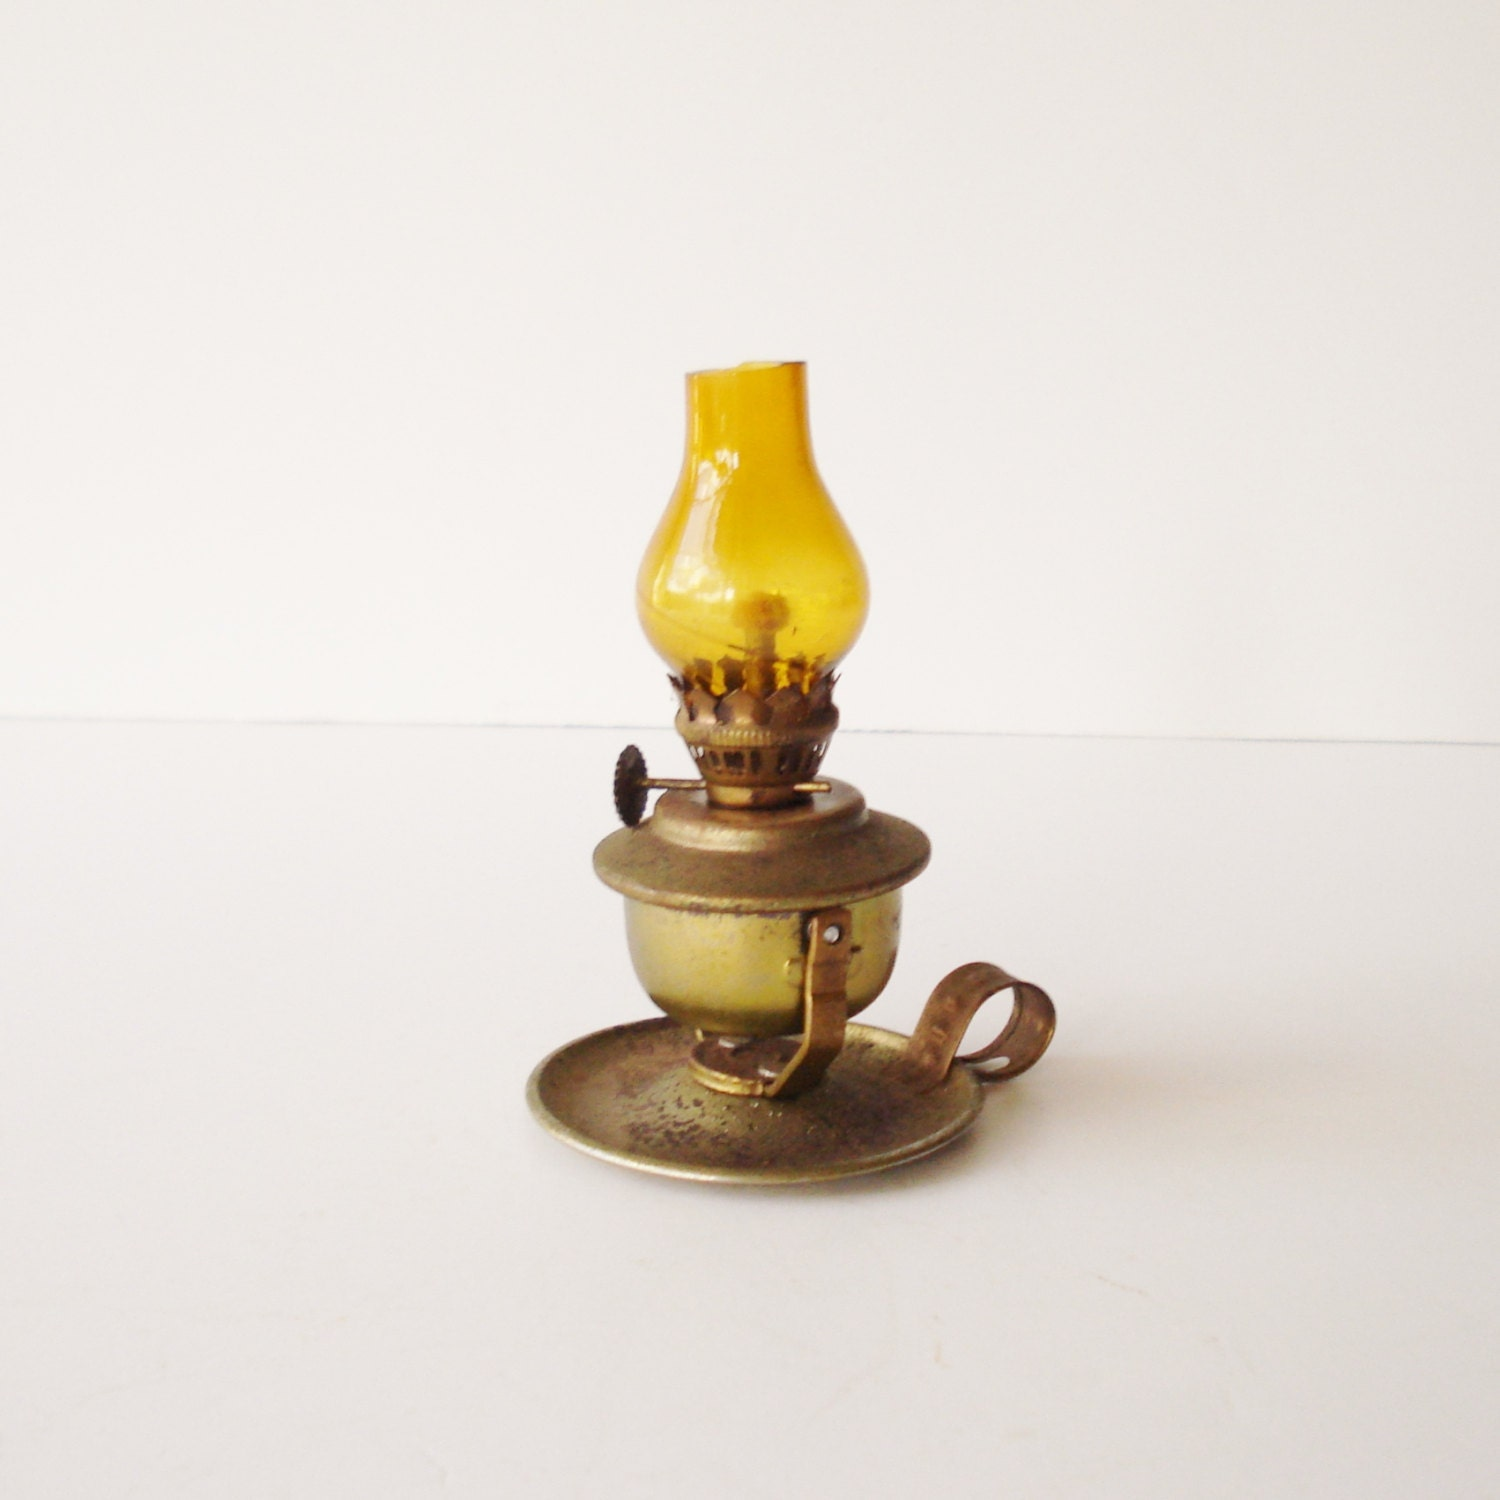 Vintage Miniature Oil Lamp Tabletop or Wall Hanging Oil Lamp